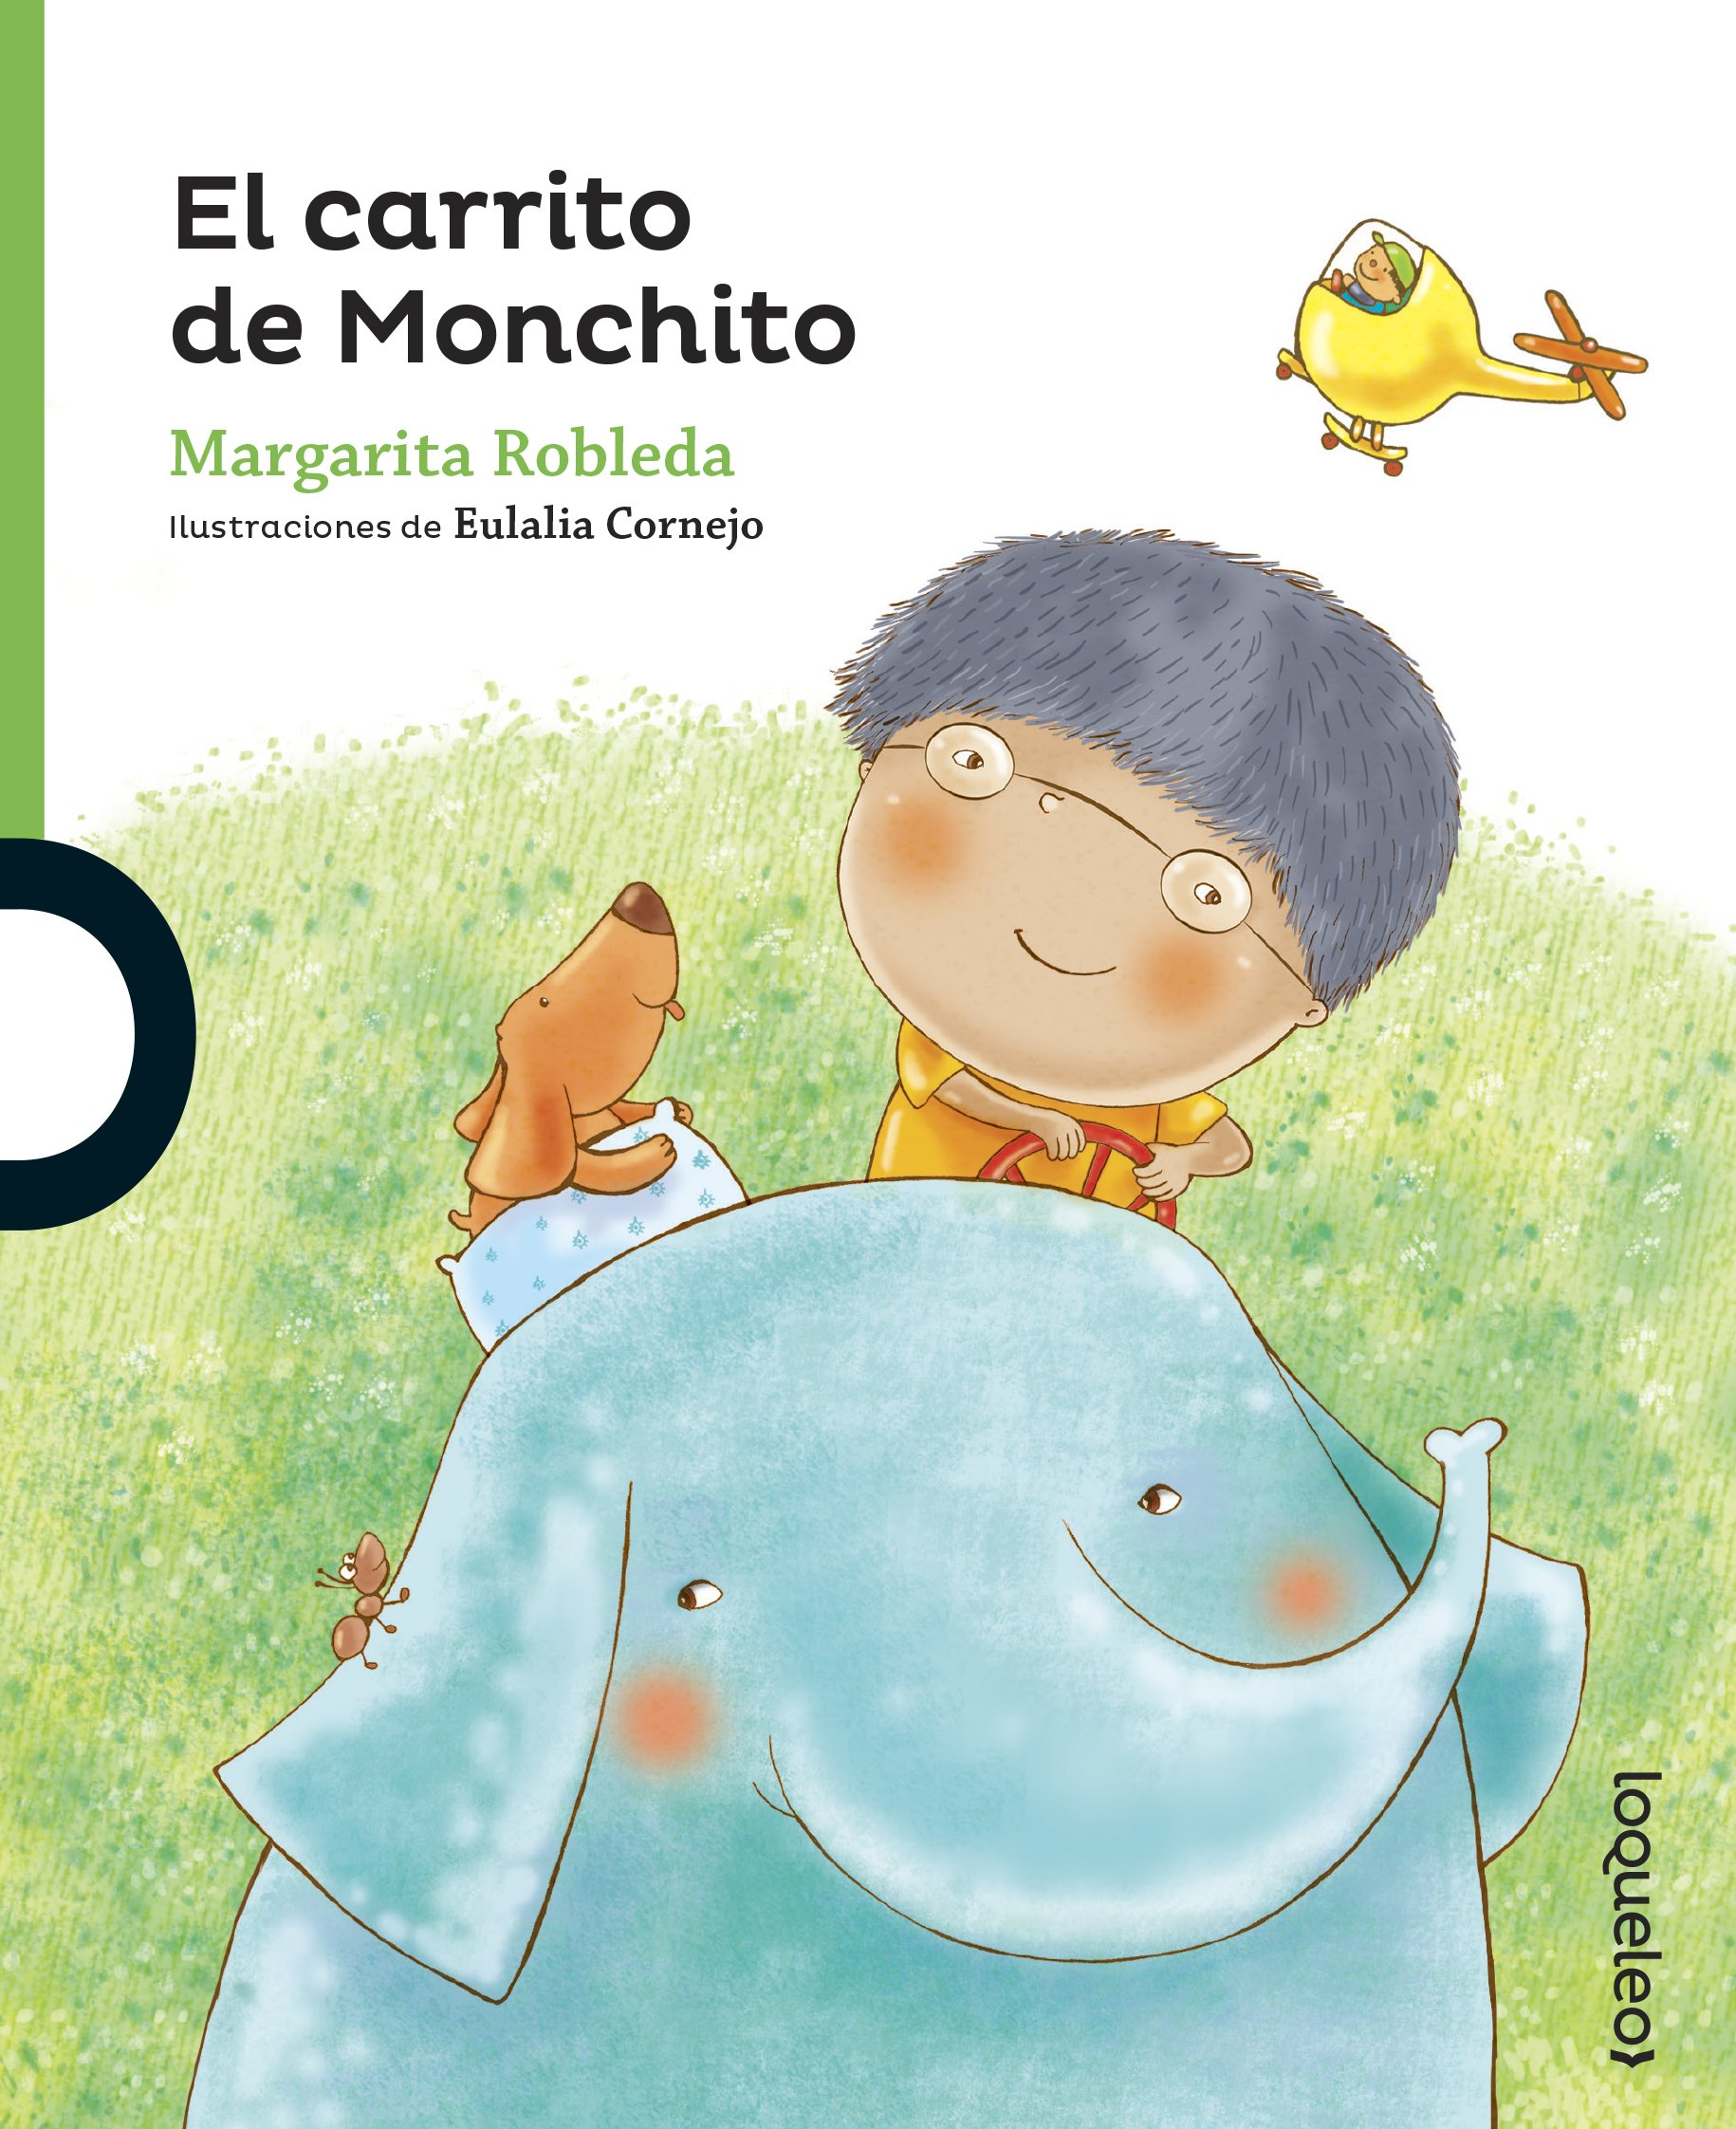 El carrito de Monchito / The car of Monchito (Serie Verde: Cuentos Traviesos / Green Series: Naughty Tales) (Spanish Edition) (Spanish) Paperback – January ...